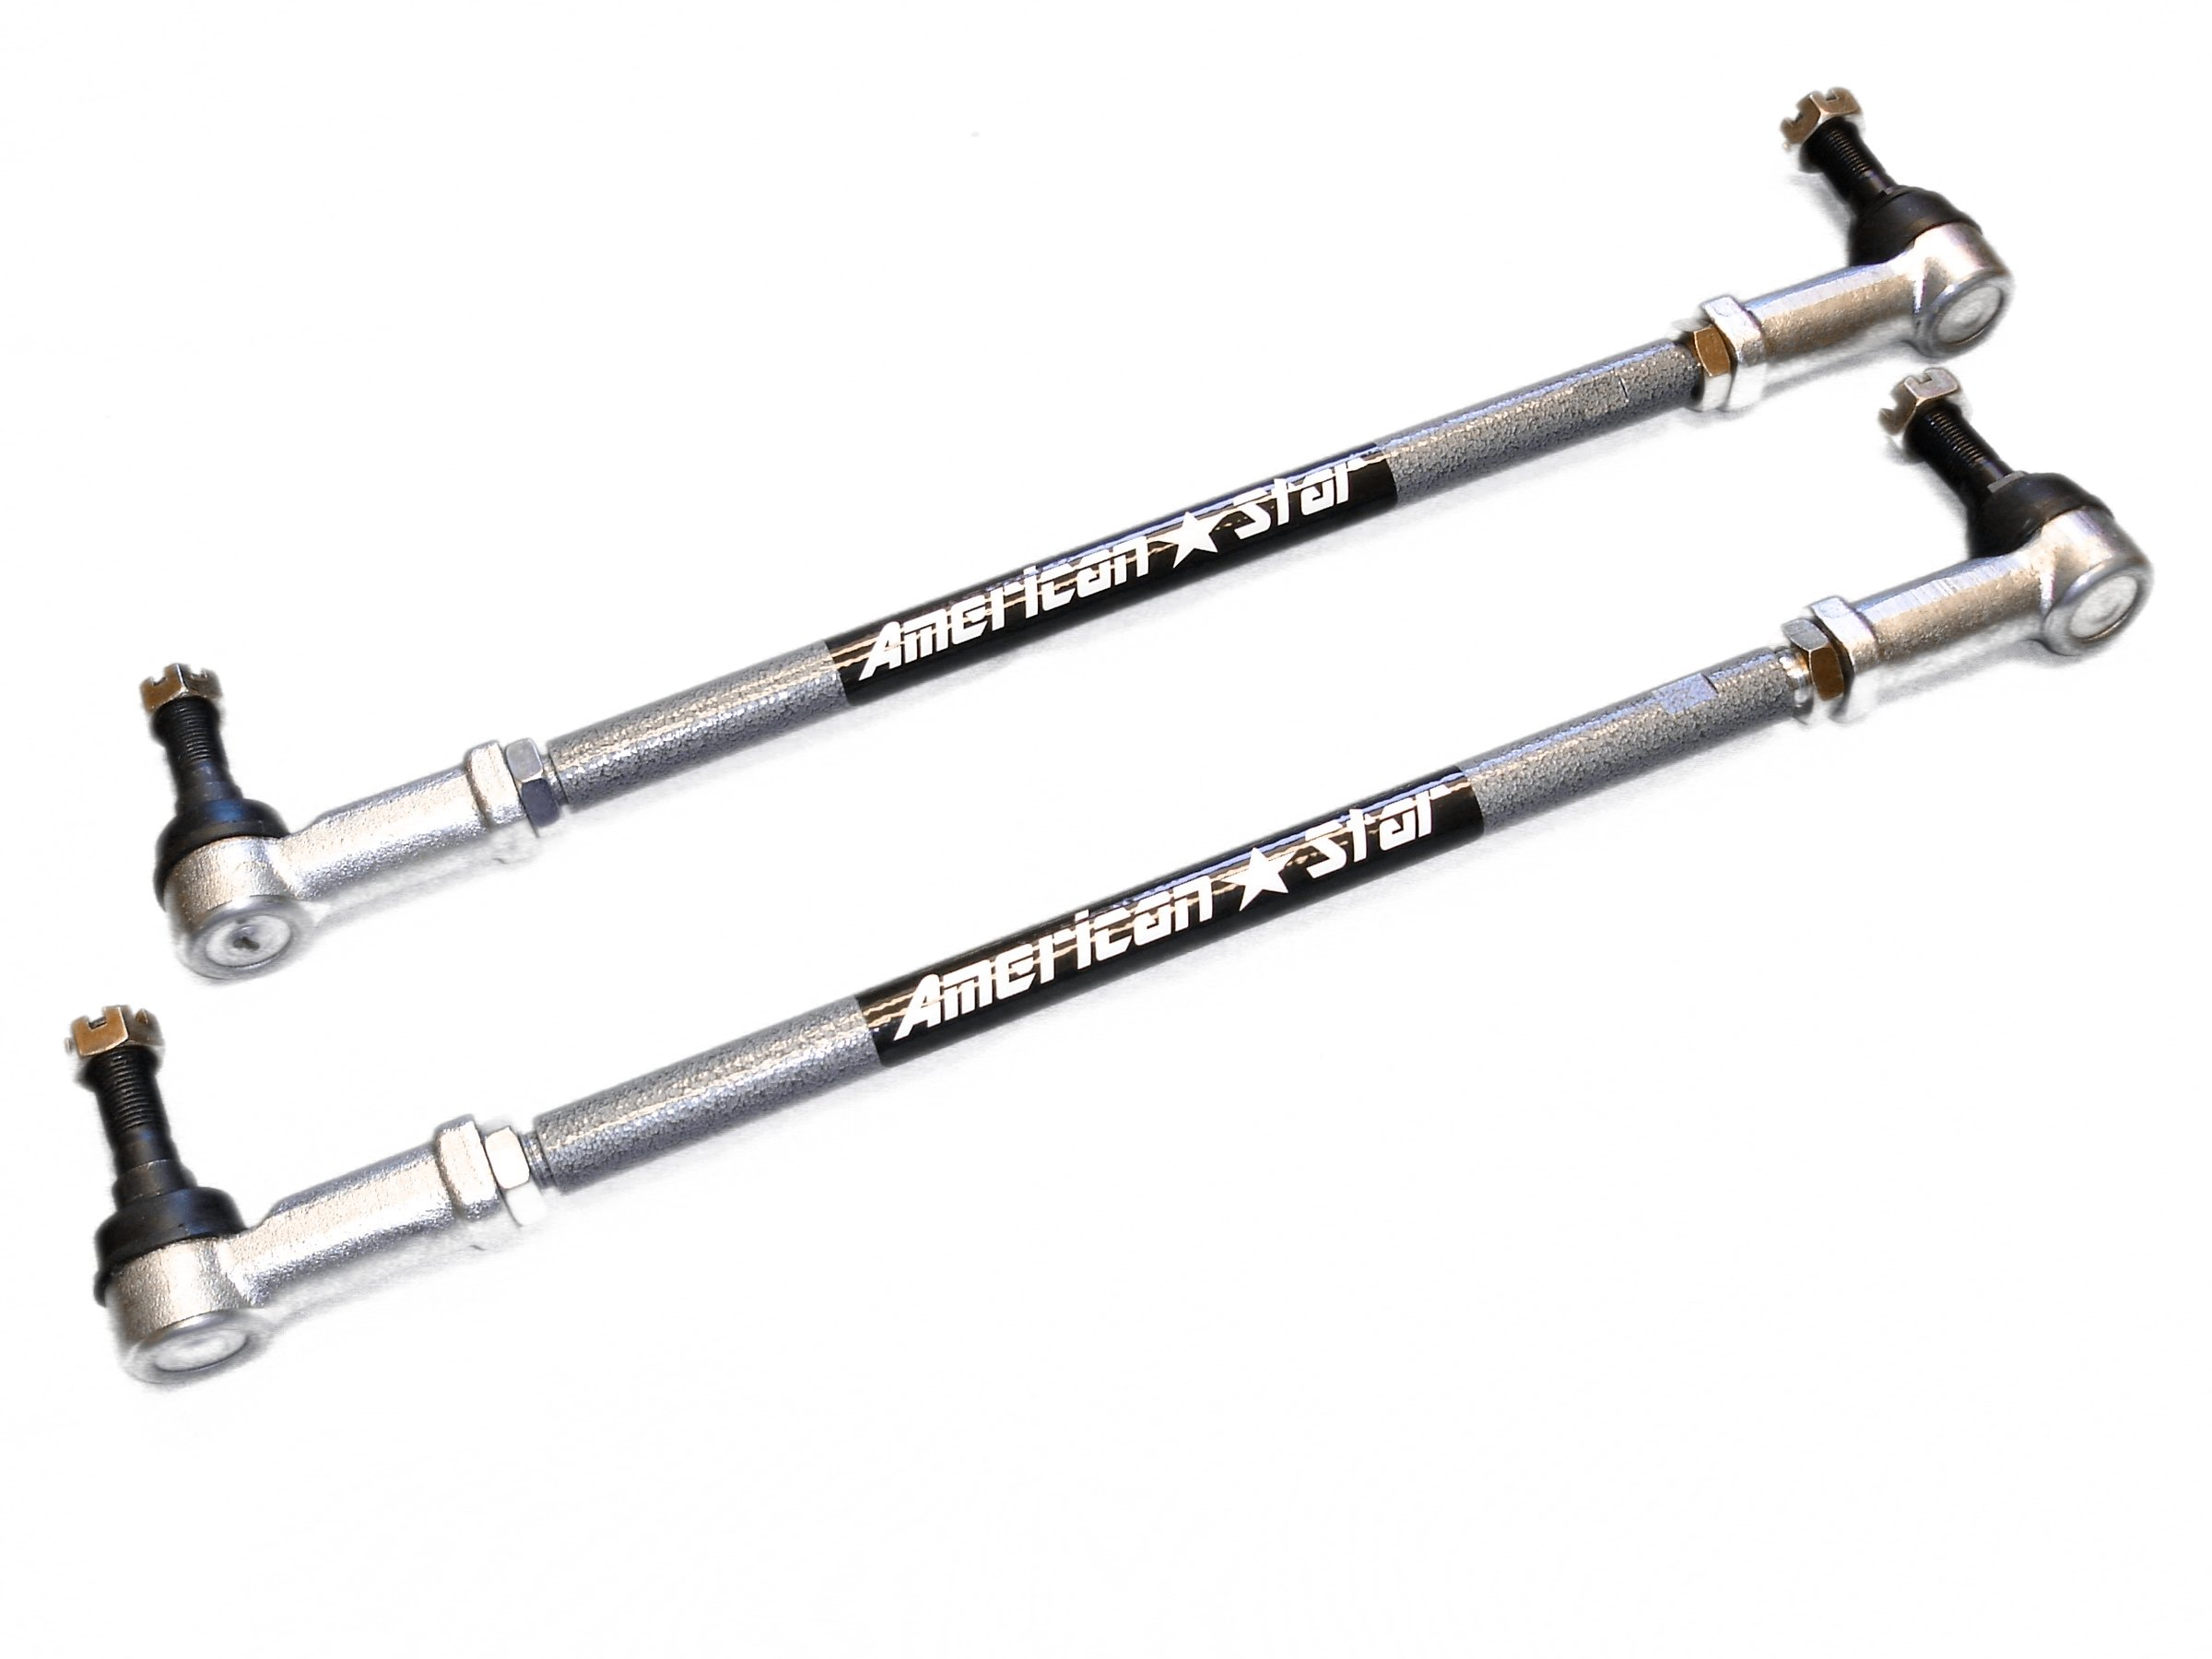 American Star Chromoly Steel Atv Tie Rod Upgrade Kit For Honda Rincon 650 680 03 1 See